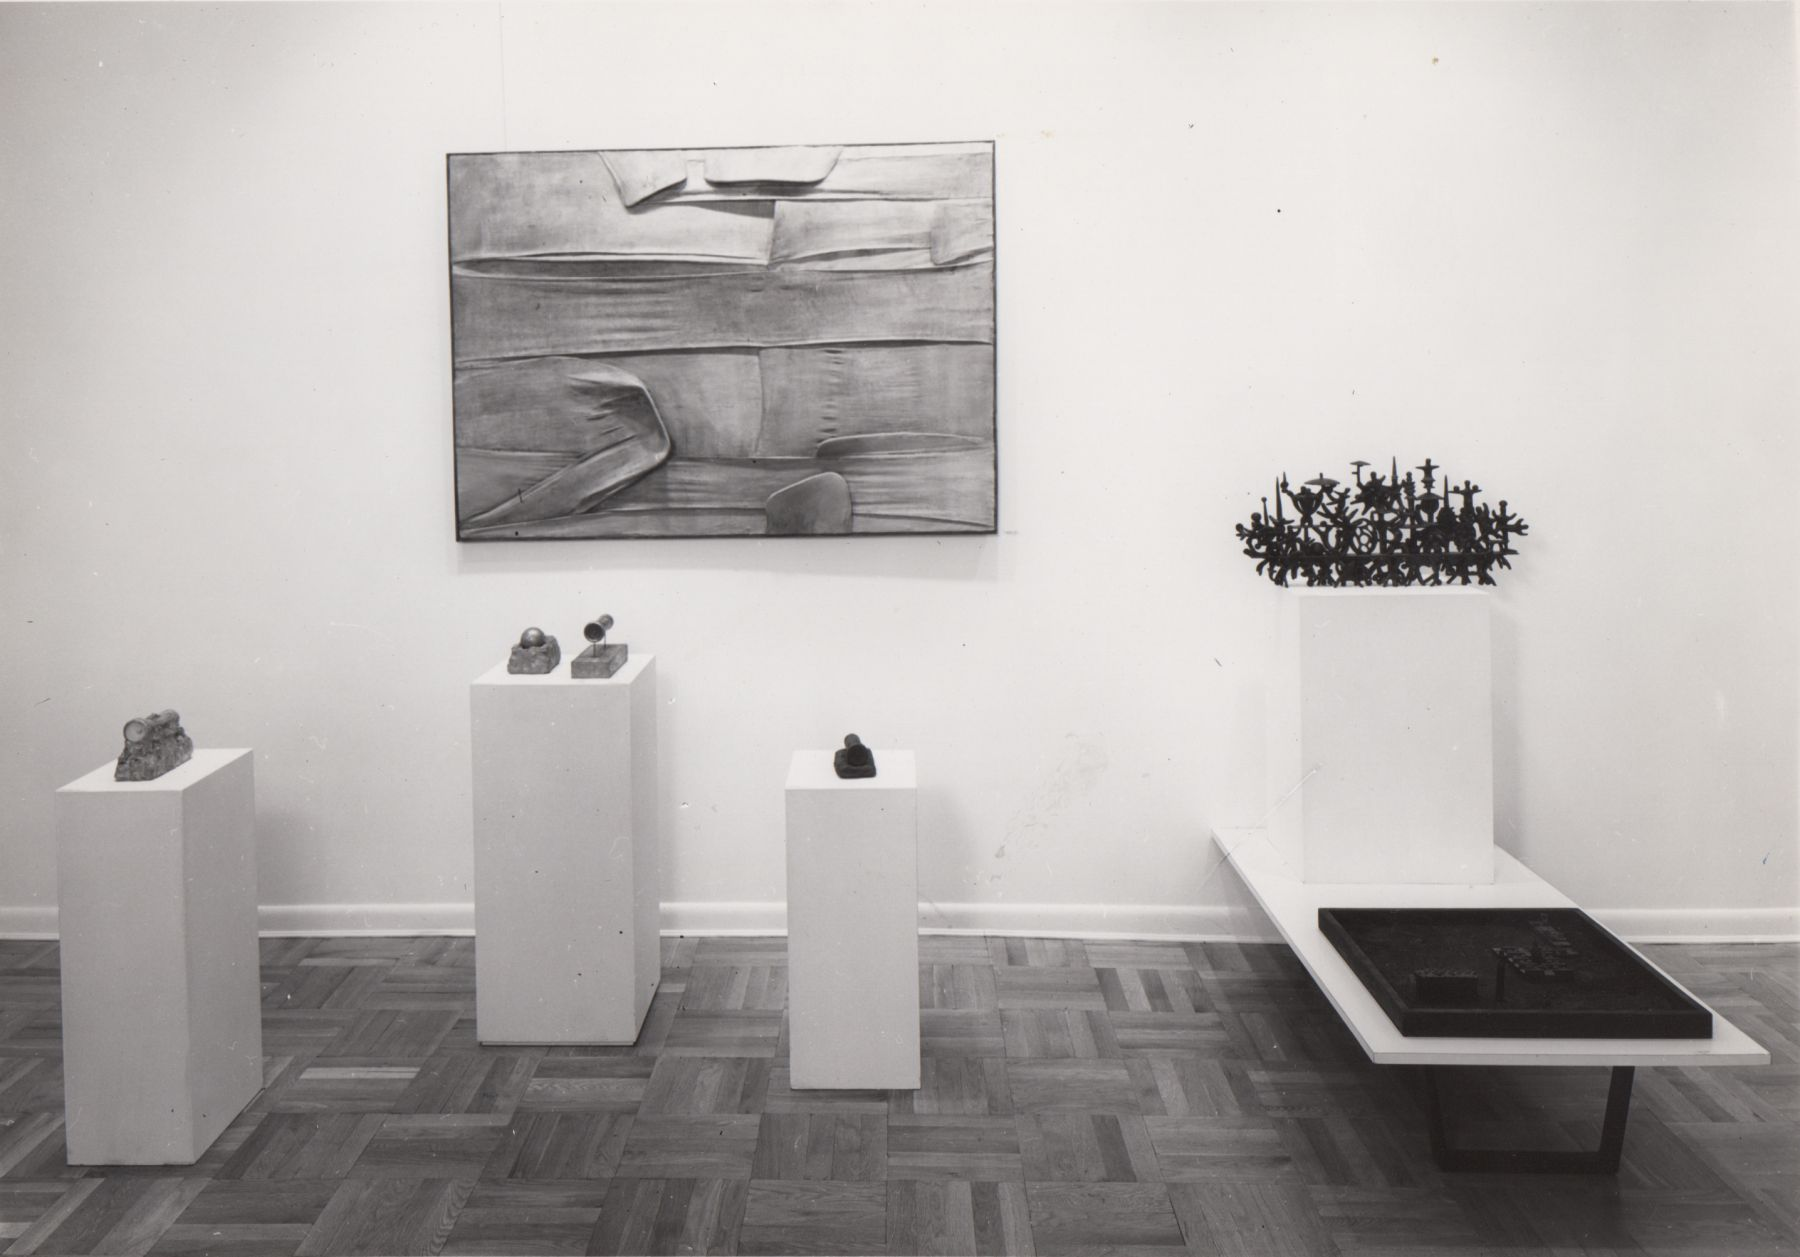 Installation view, Work in Three Dimensions, 4 EAST 77